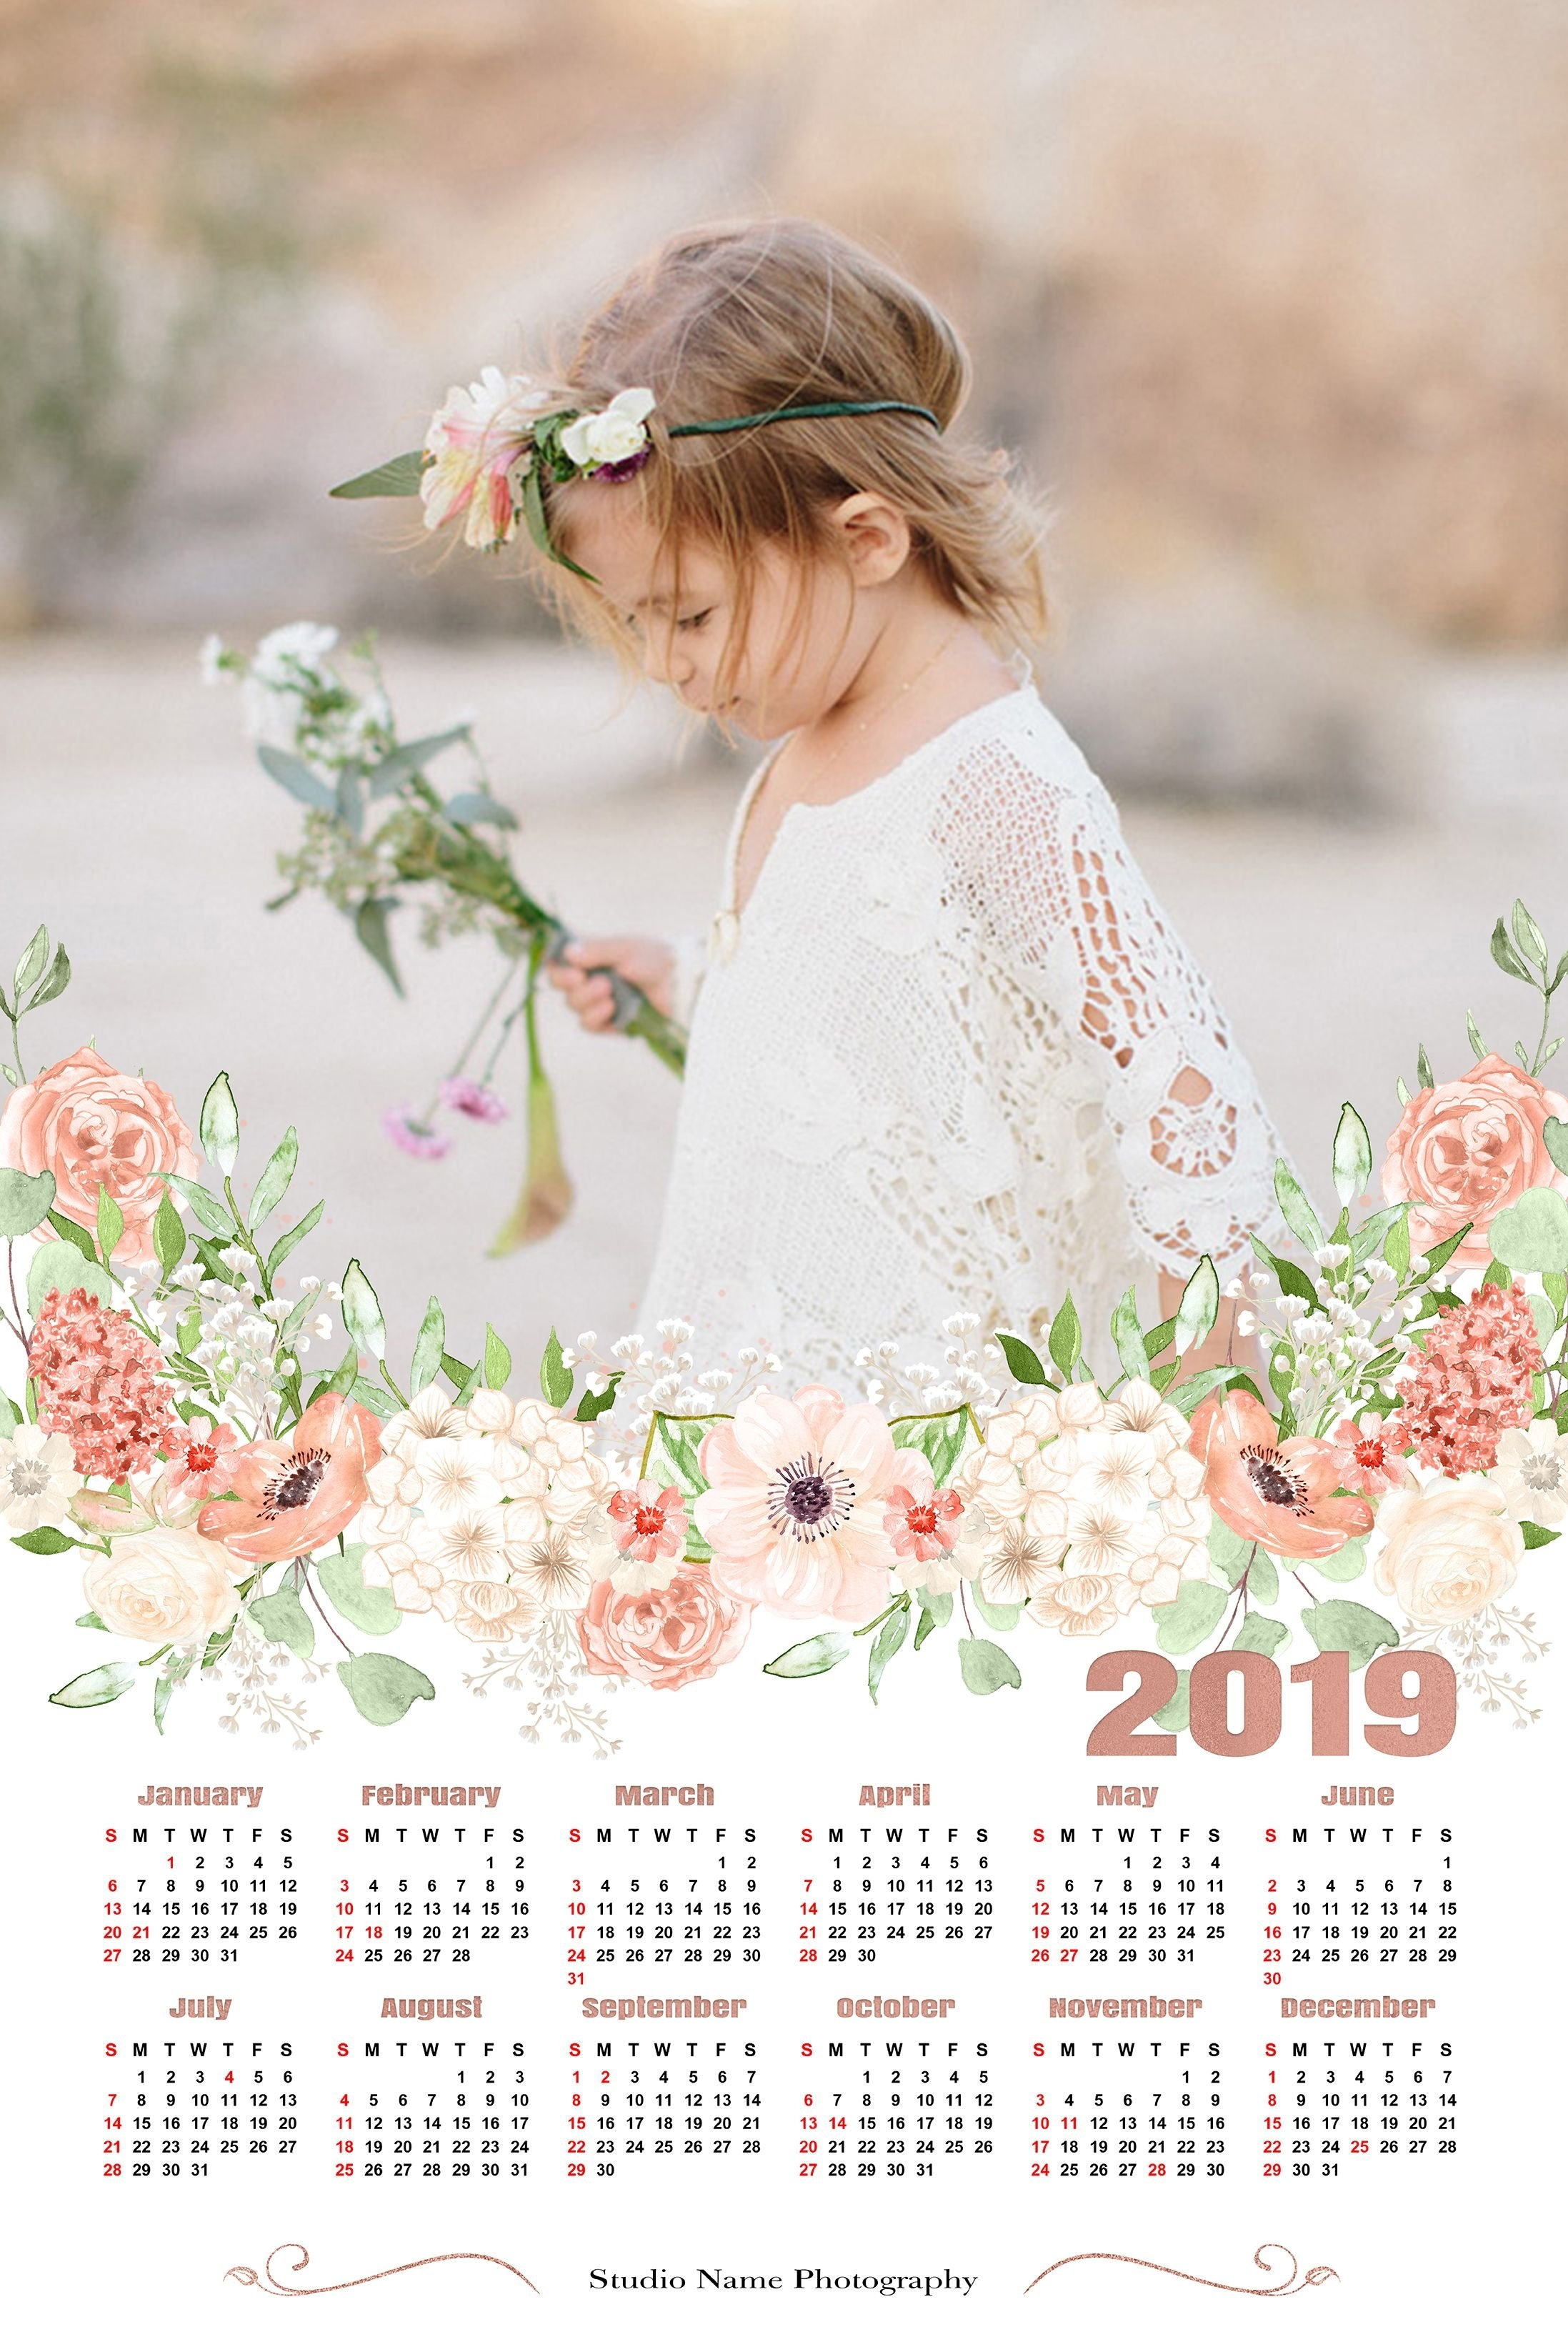 2019 Calendar Template  12X18 Photo Calendar Photoshop Template 8X10 Calendar 2019